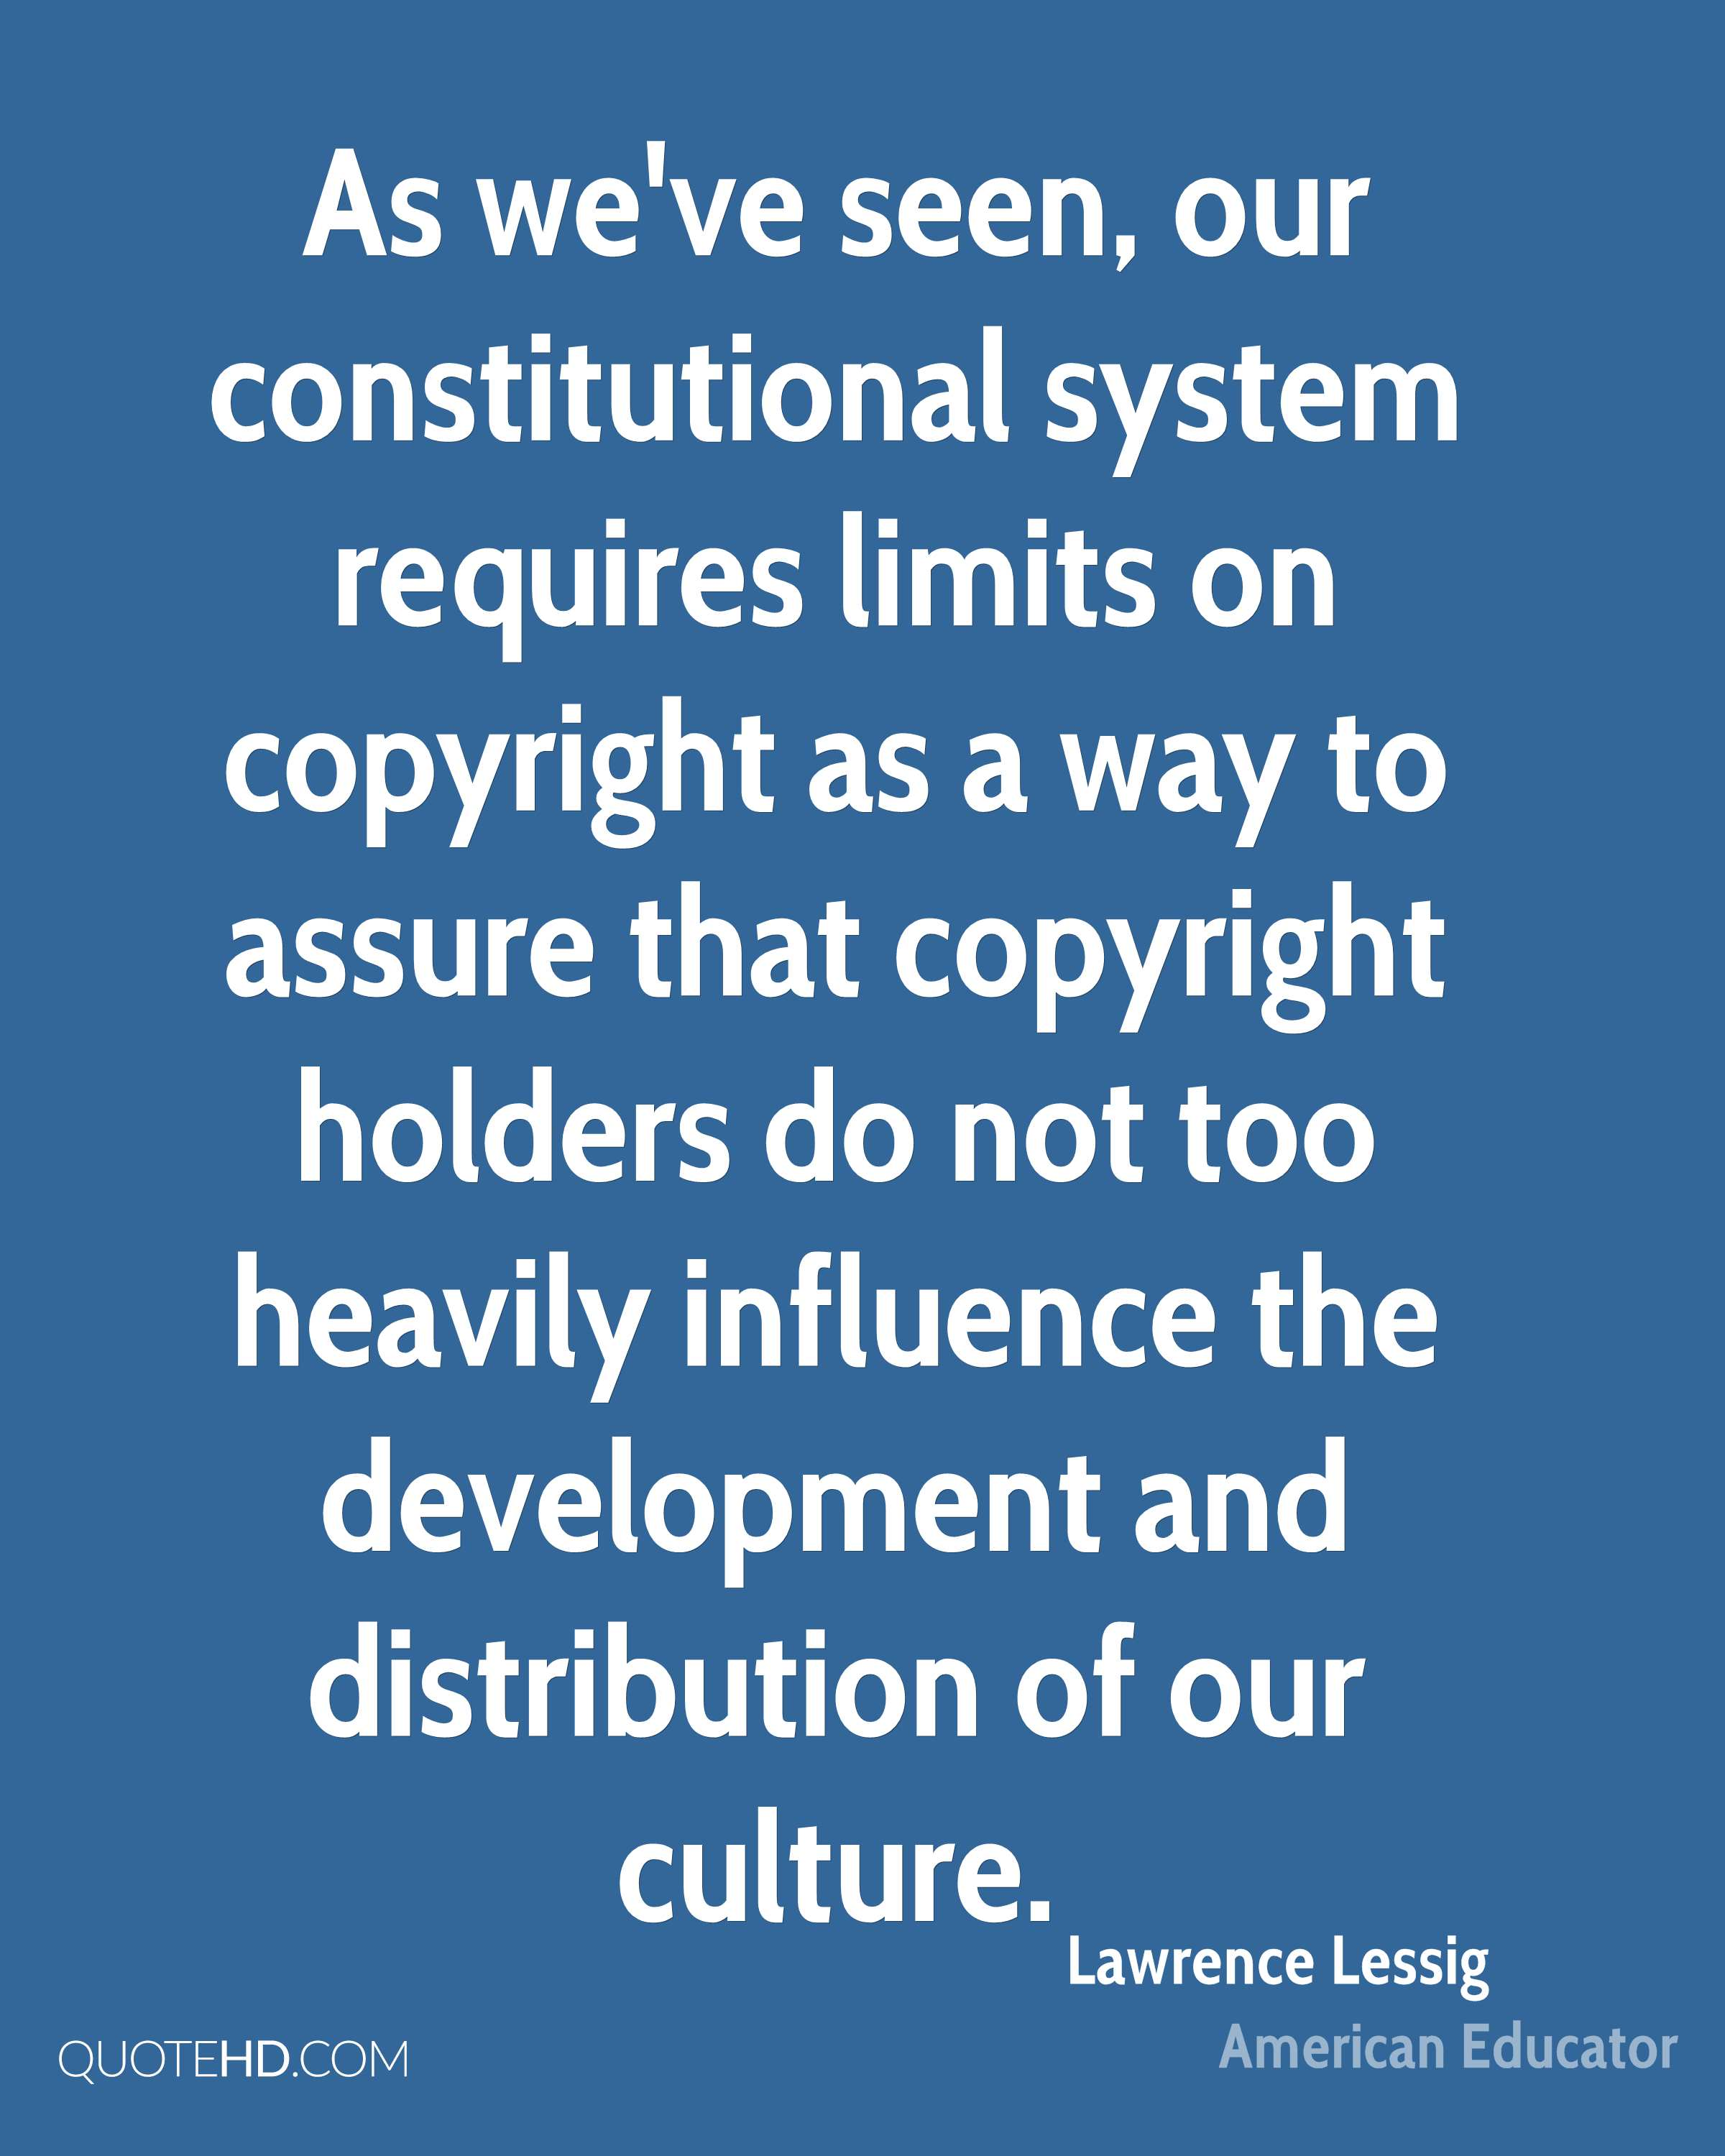 As we've seen, our constitutional system requires limits on copyright as a way to assure that copyright holders do not too heavily influence the development and distribution of our culture.